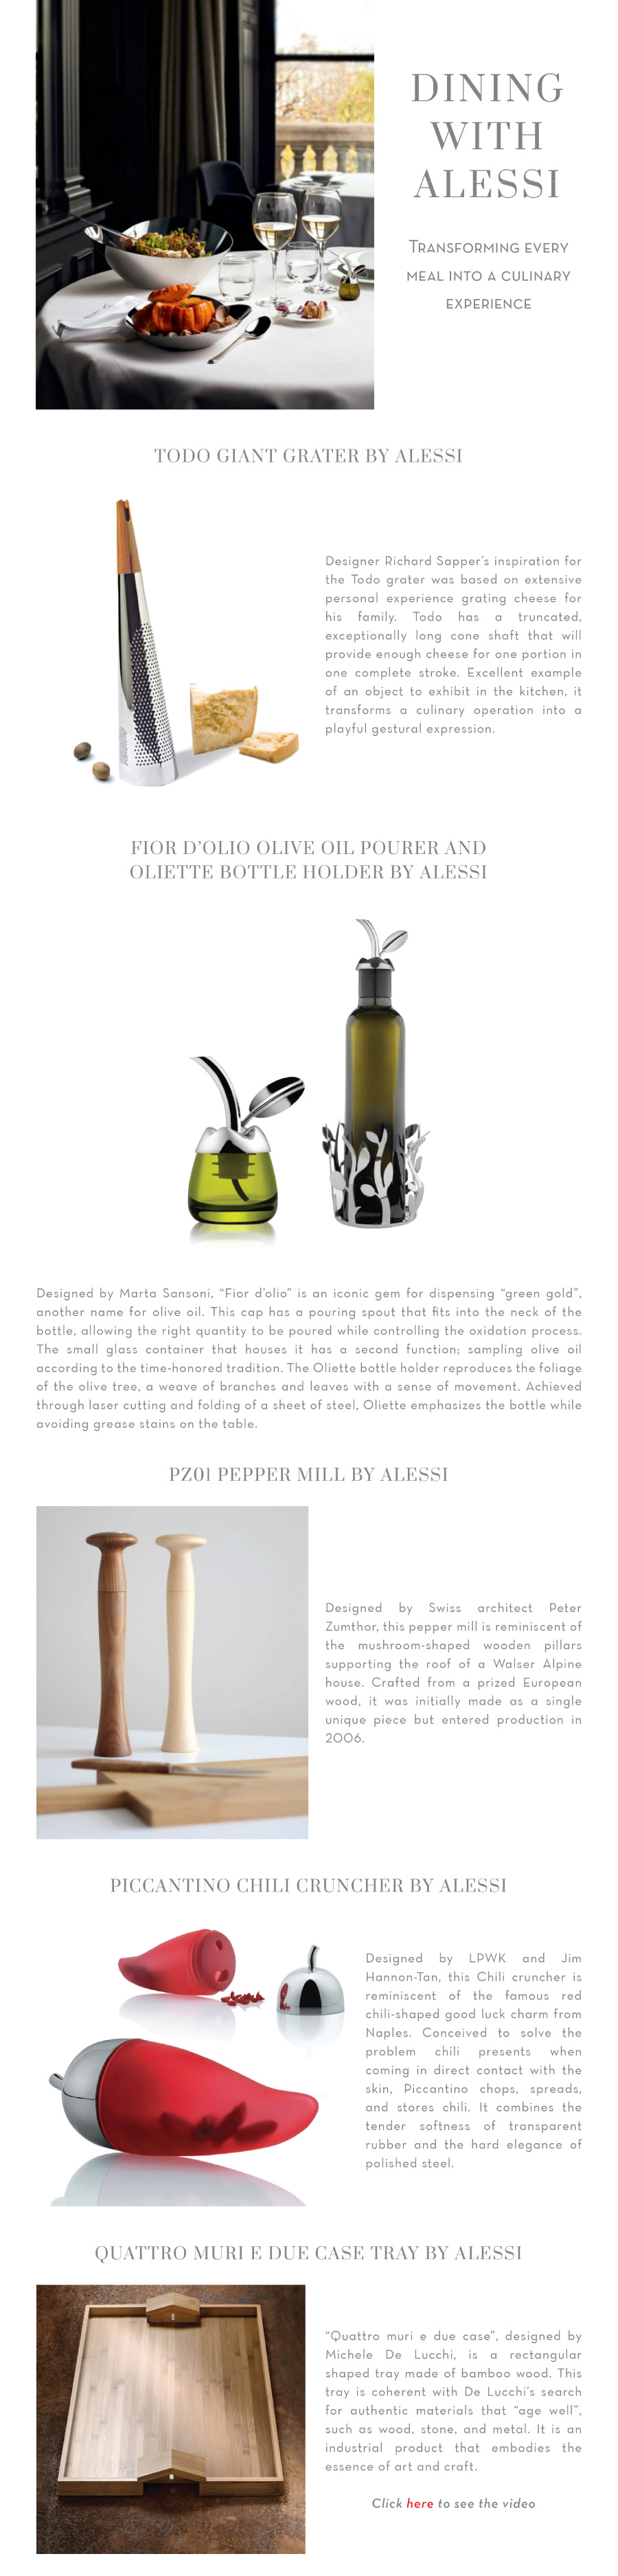 newsletter_diningwithalessi